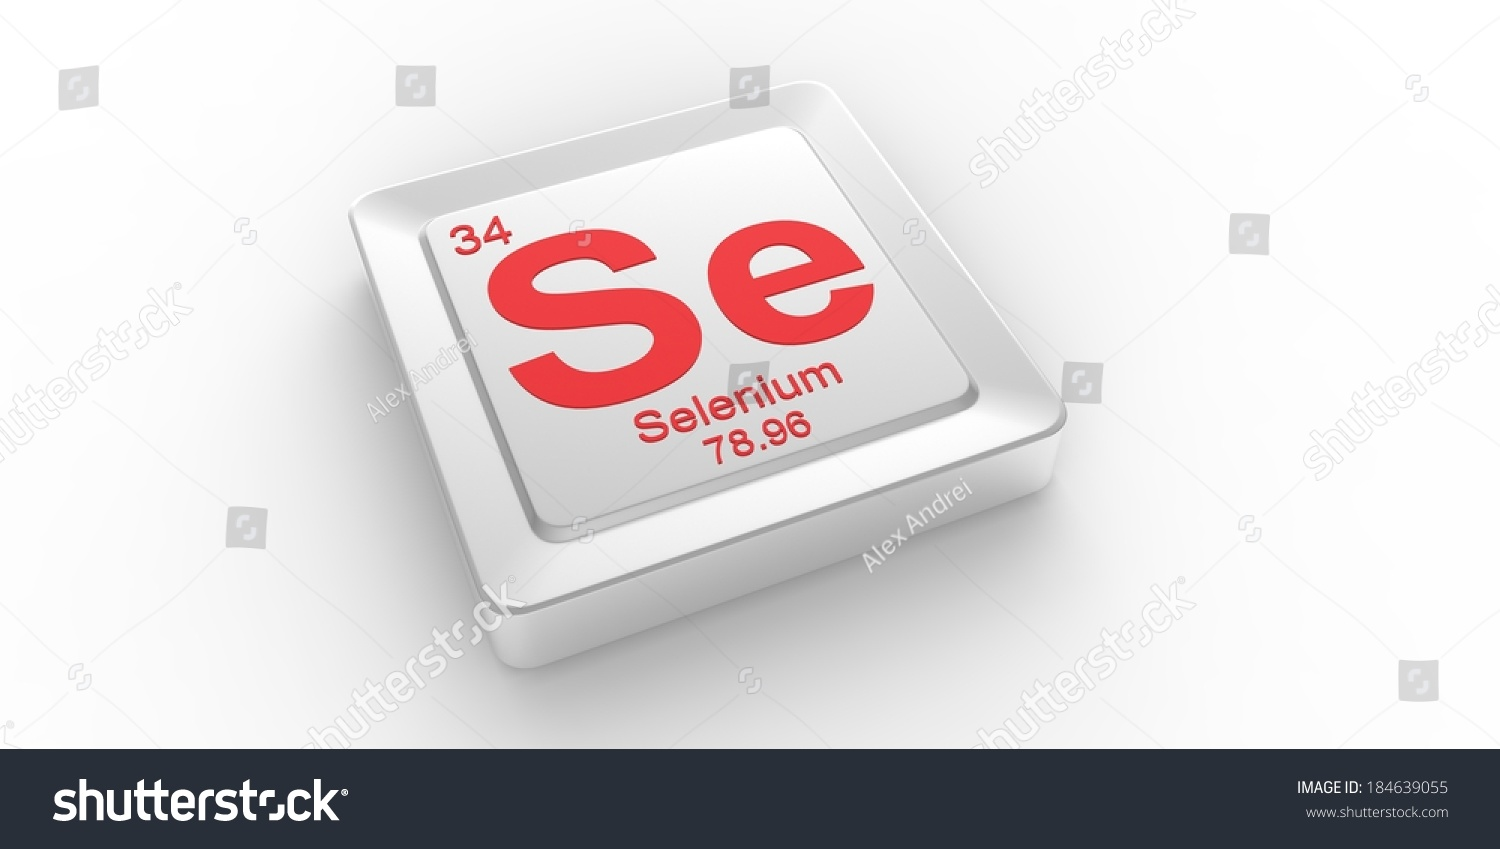 Se symbol 34 material selenium chemical stock illustration se symbol 34 material for selenium chemical element of the periodic table gamestrikefo Images